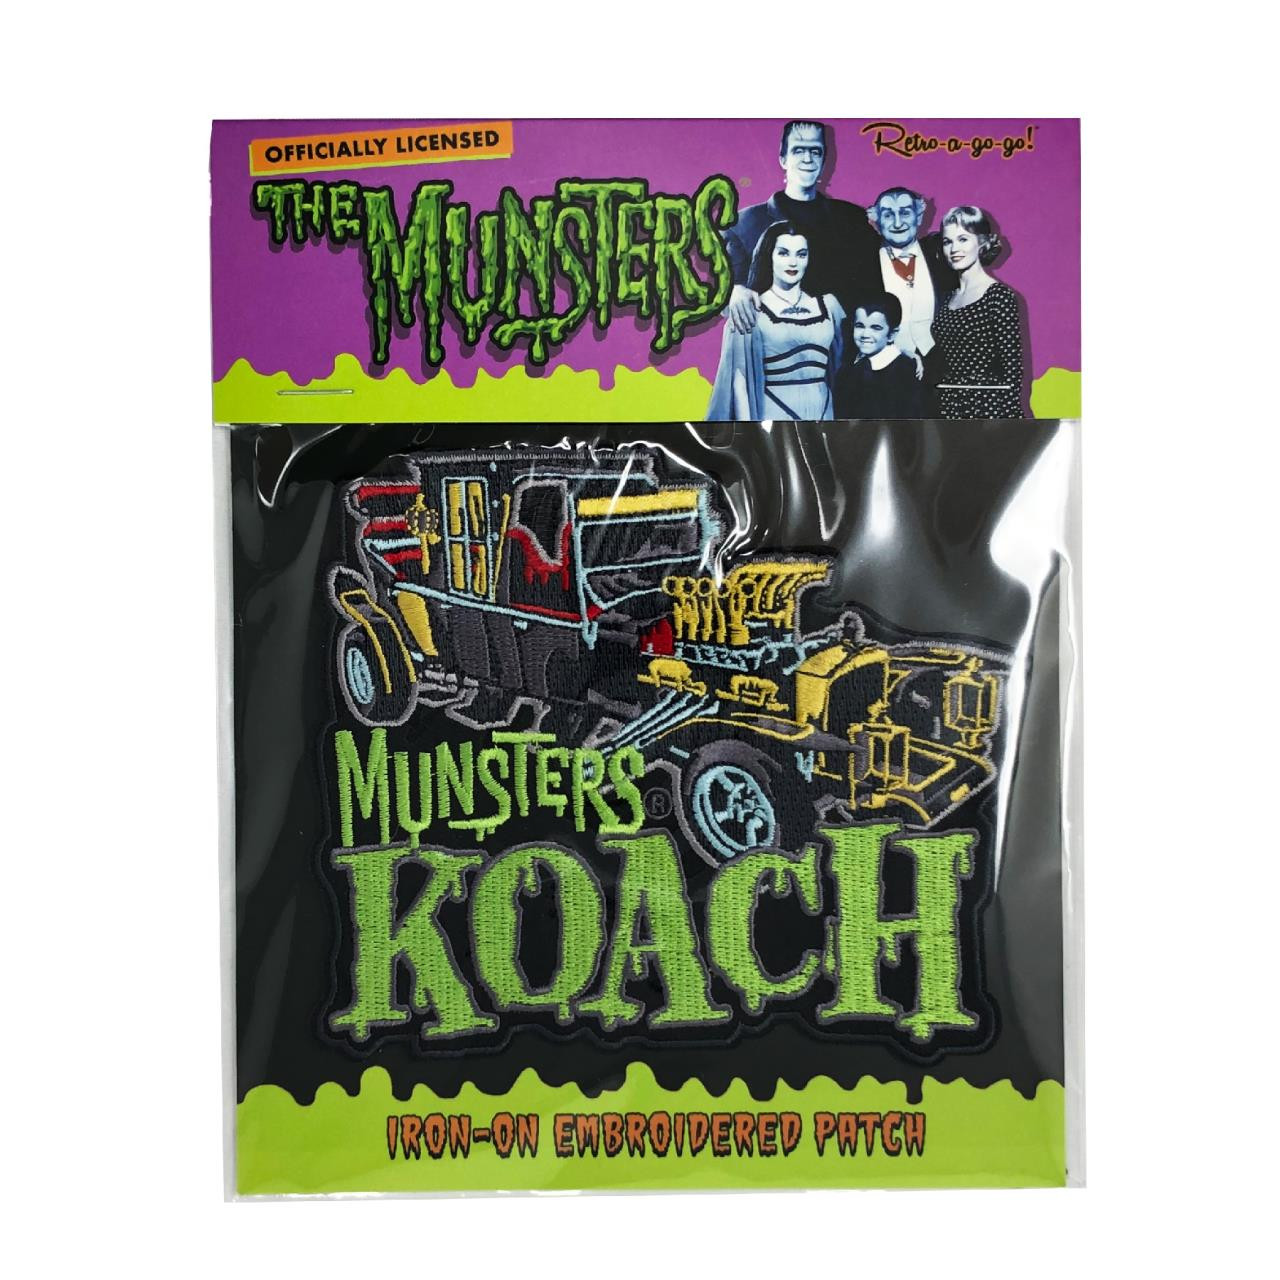 The Munsters Koach Patch* - 0659682815572